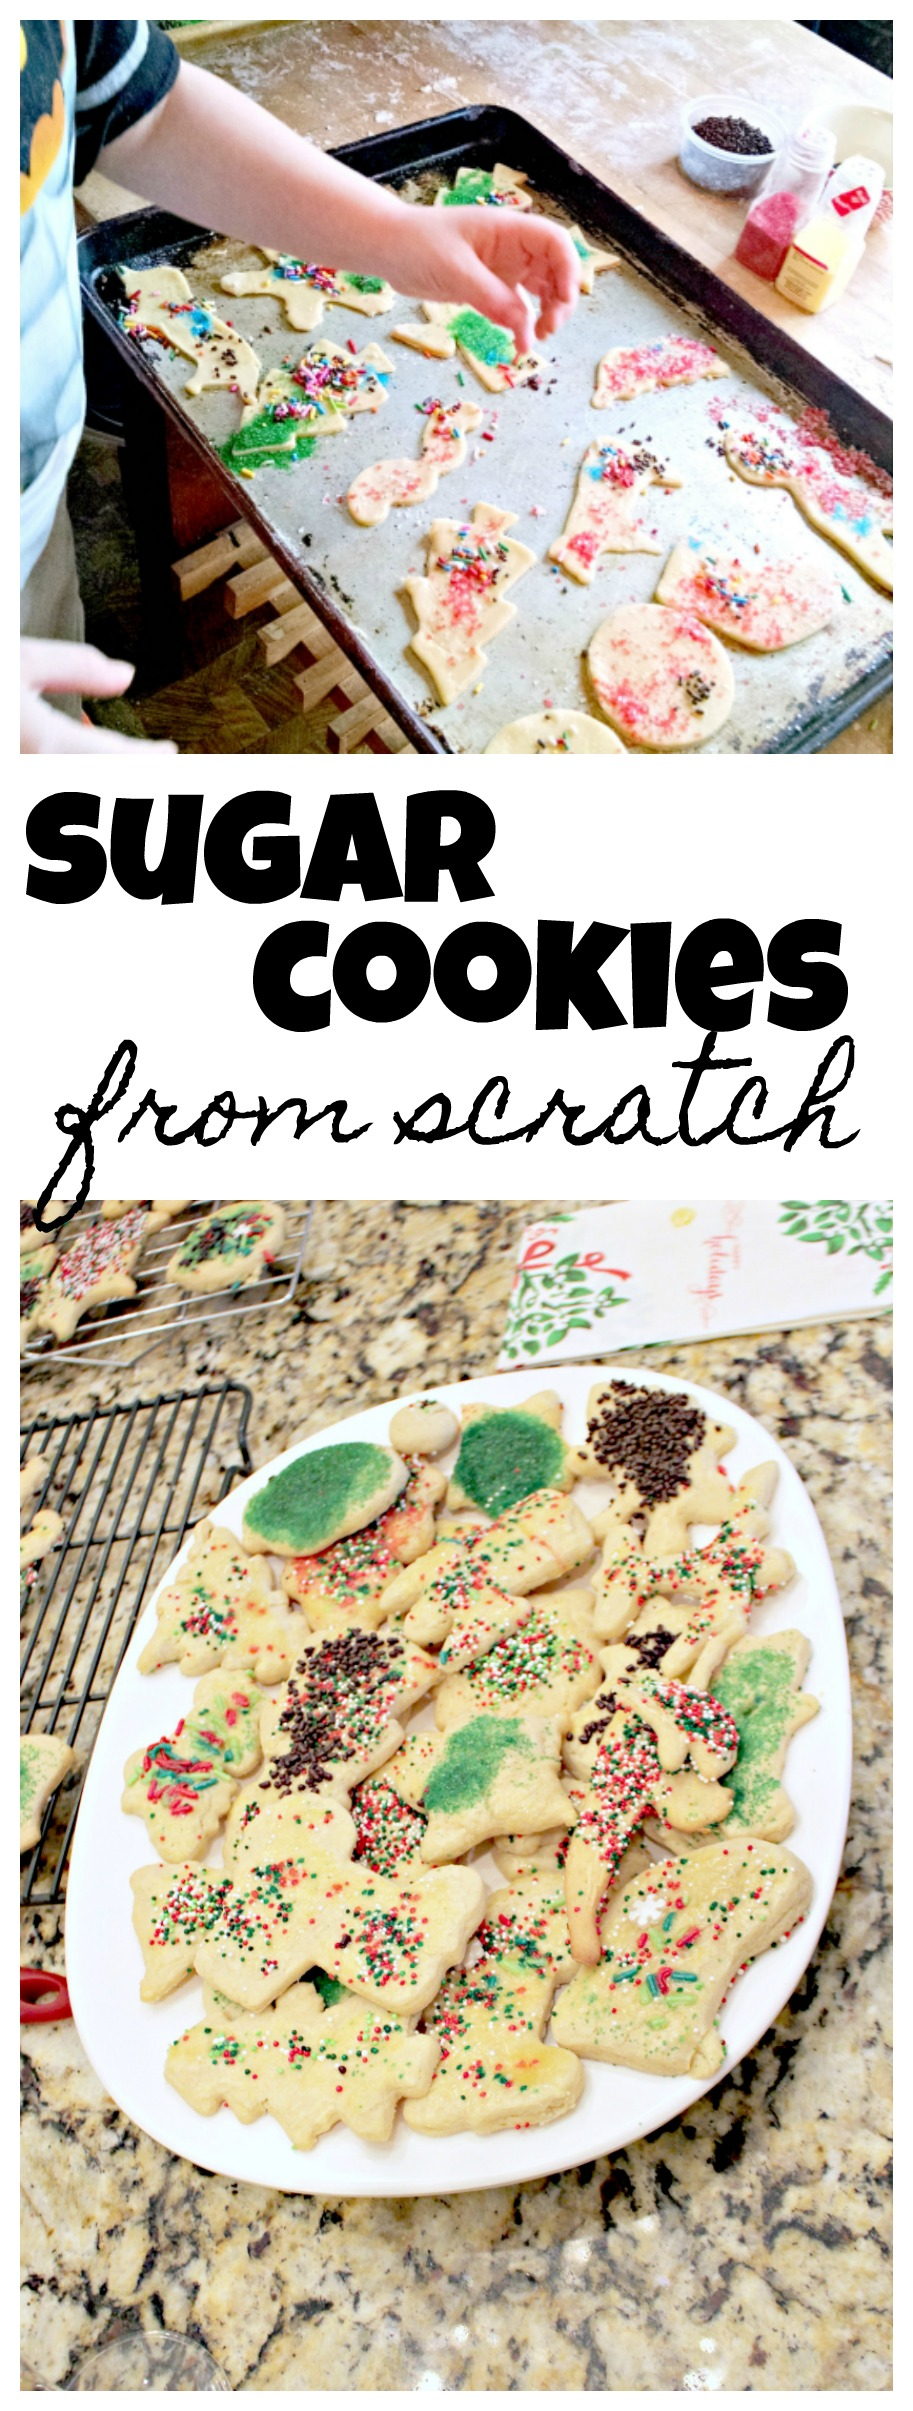 Try a new tradition this year with this sugar cookie party!